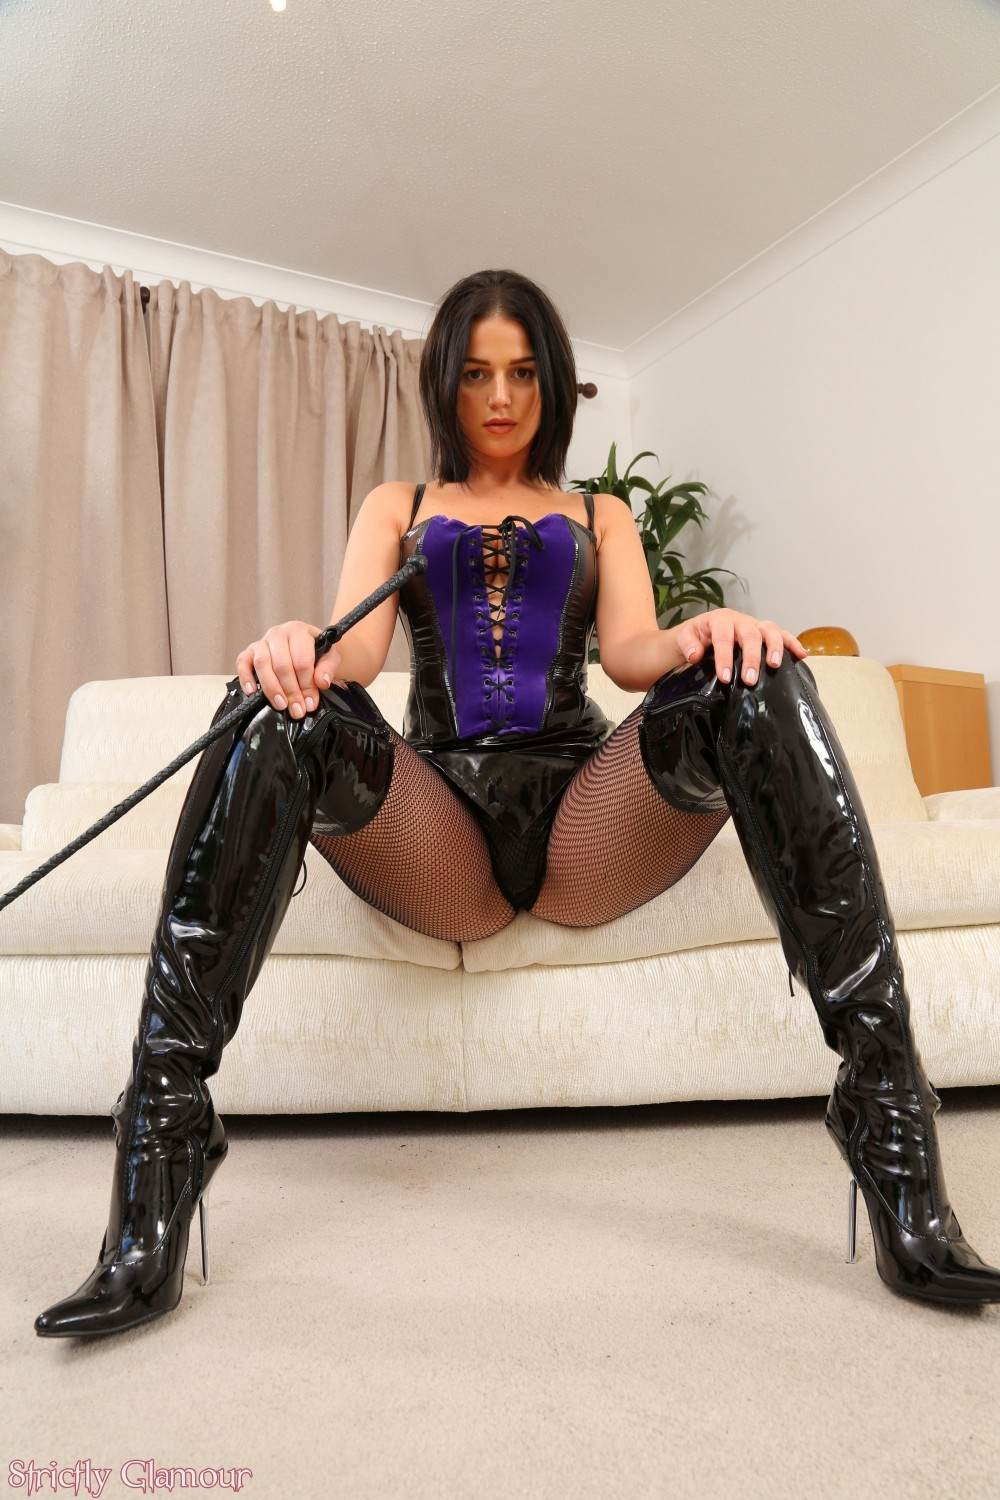 Picture #4 of Amateur dominant girl is having a while range of sexy clothing to punish men in: high heel boots, PVC skirt abd sexy fishnets